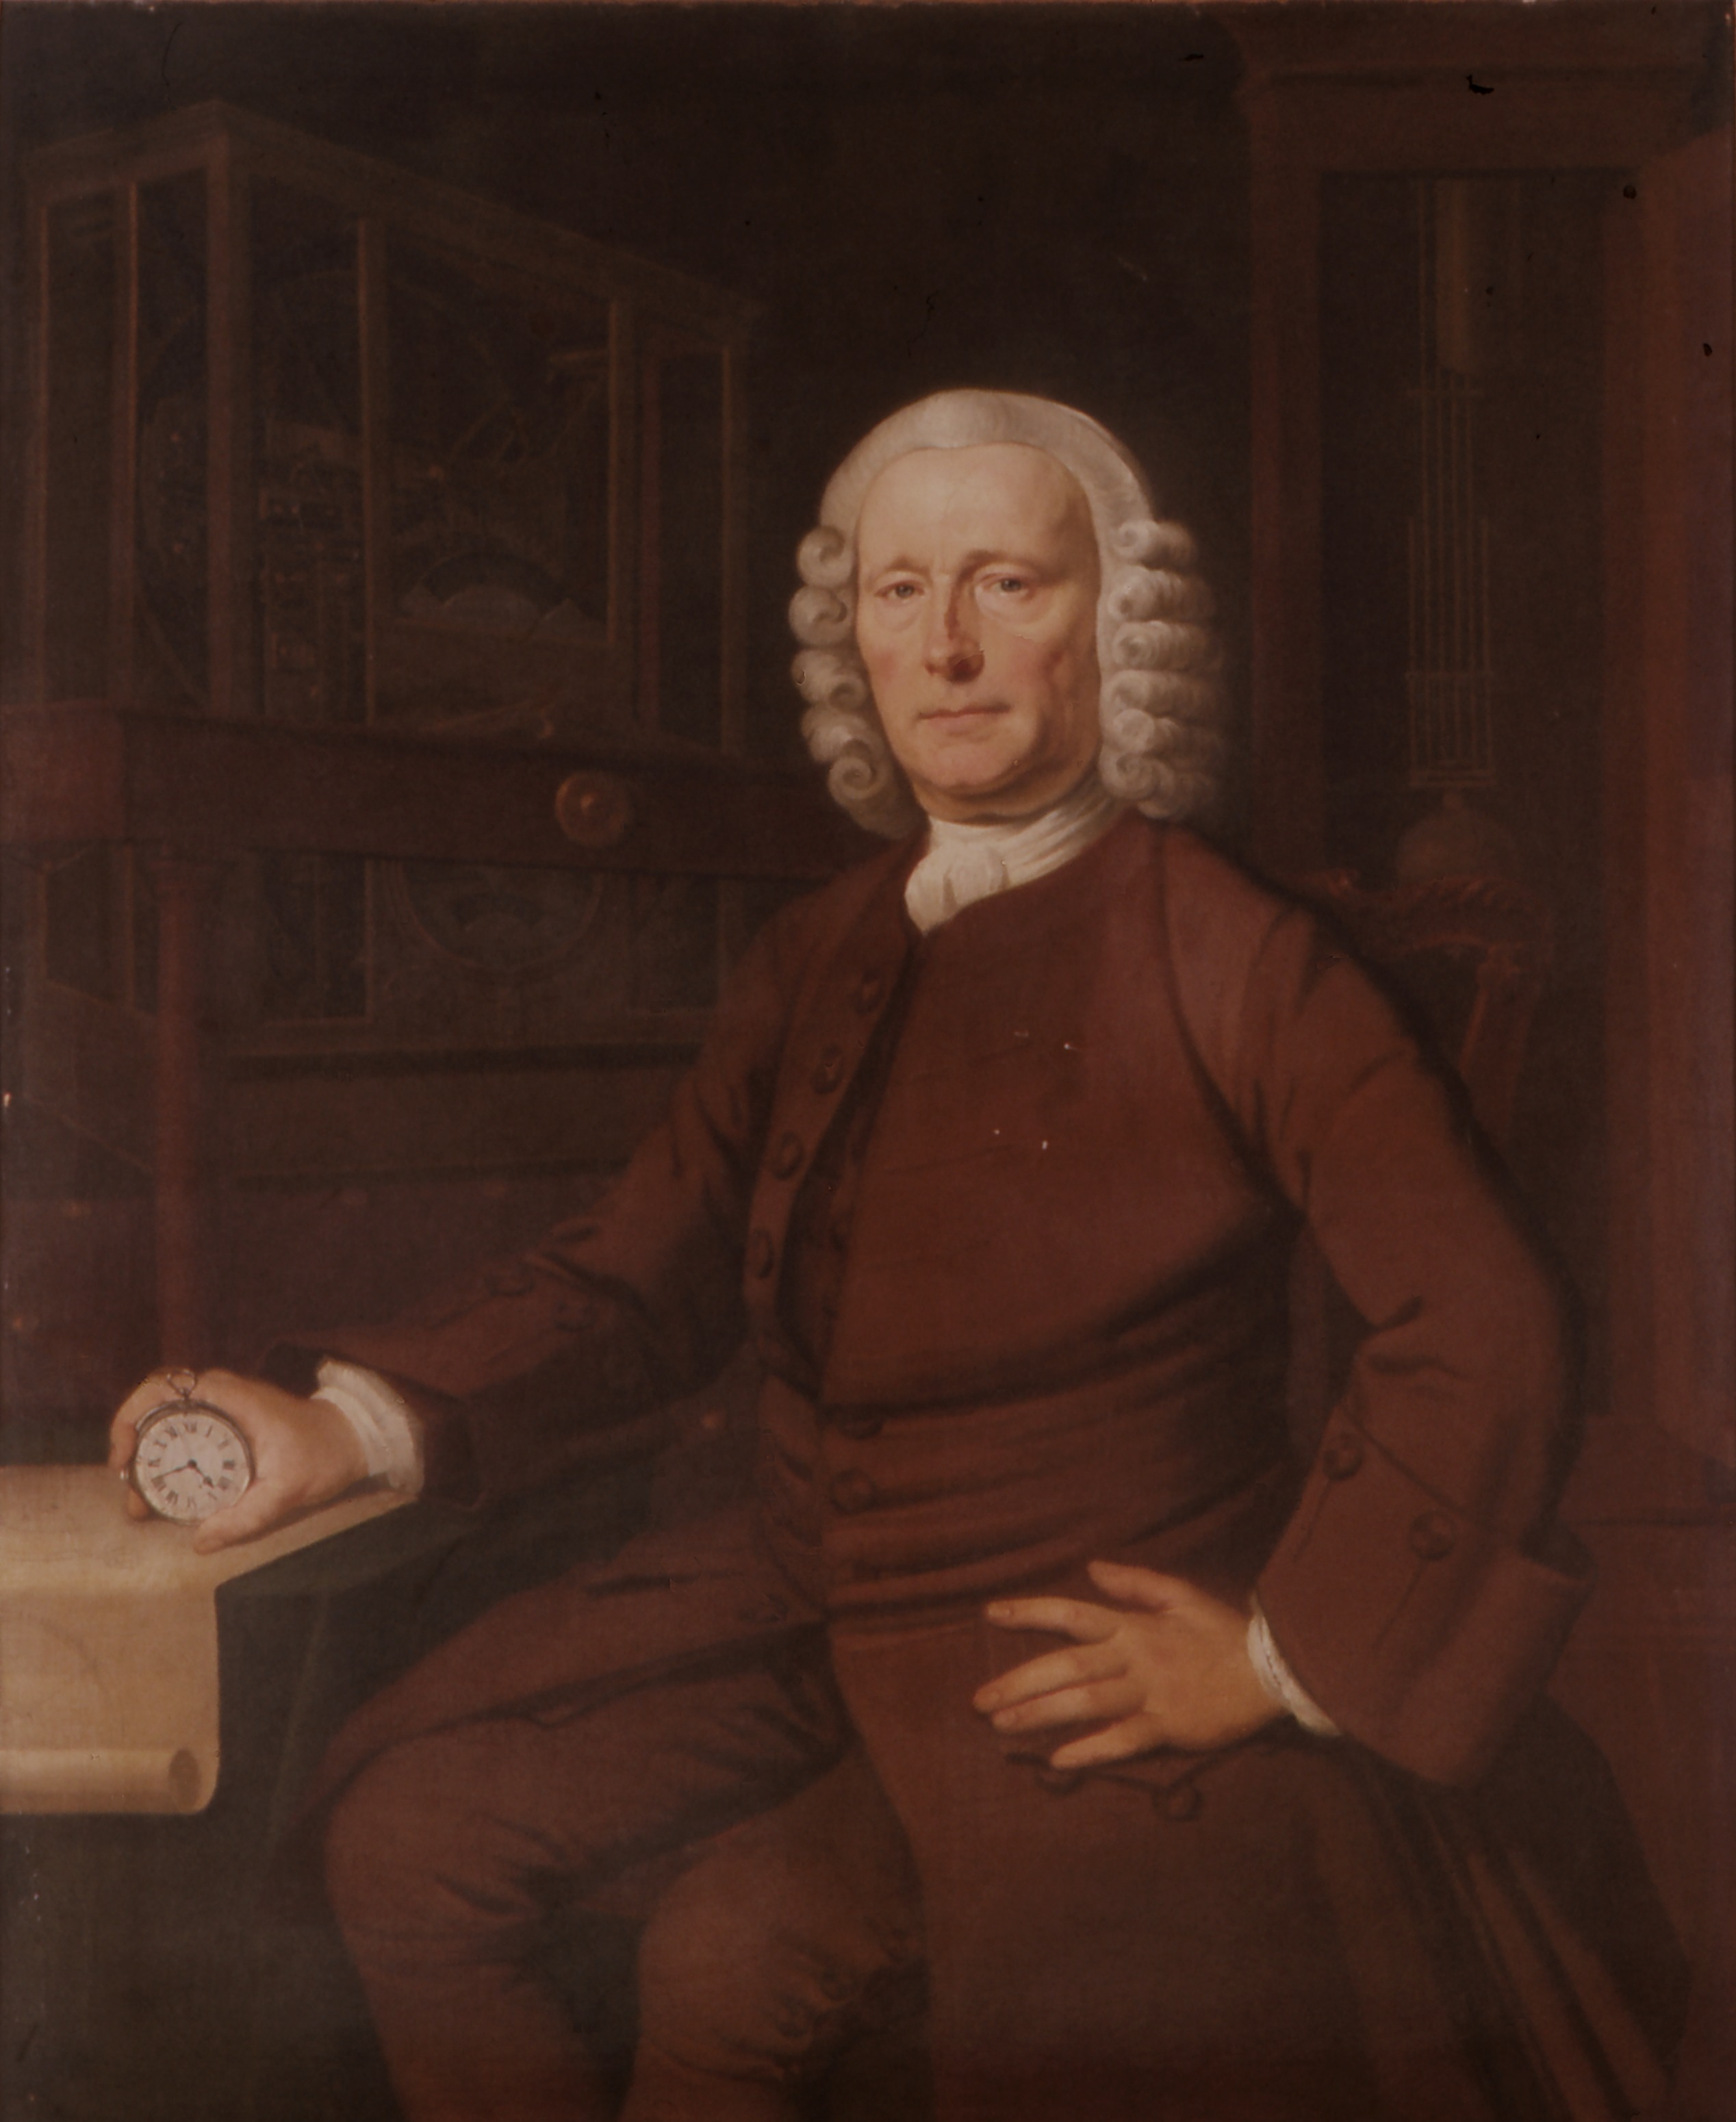 John Harrison, (1693-1776). Inventor of the marine chronometer in 1757. A self-educated English carpenter and clockmaker who invented the marine chronometer, solving the problem of calculating longitude while at sea. He was awarded a government prize for its accuracy